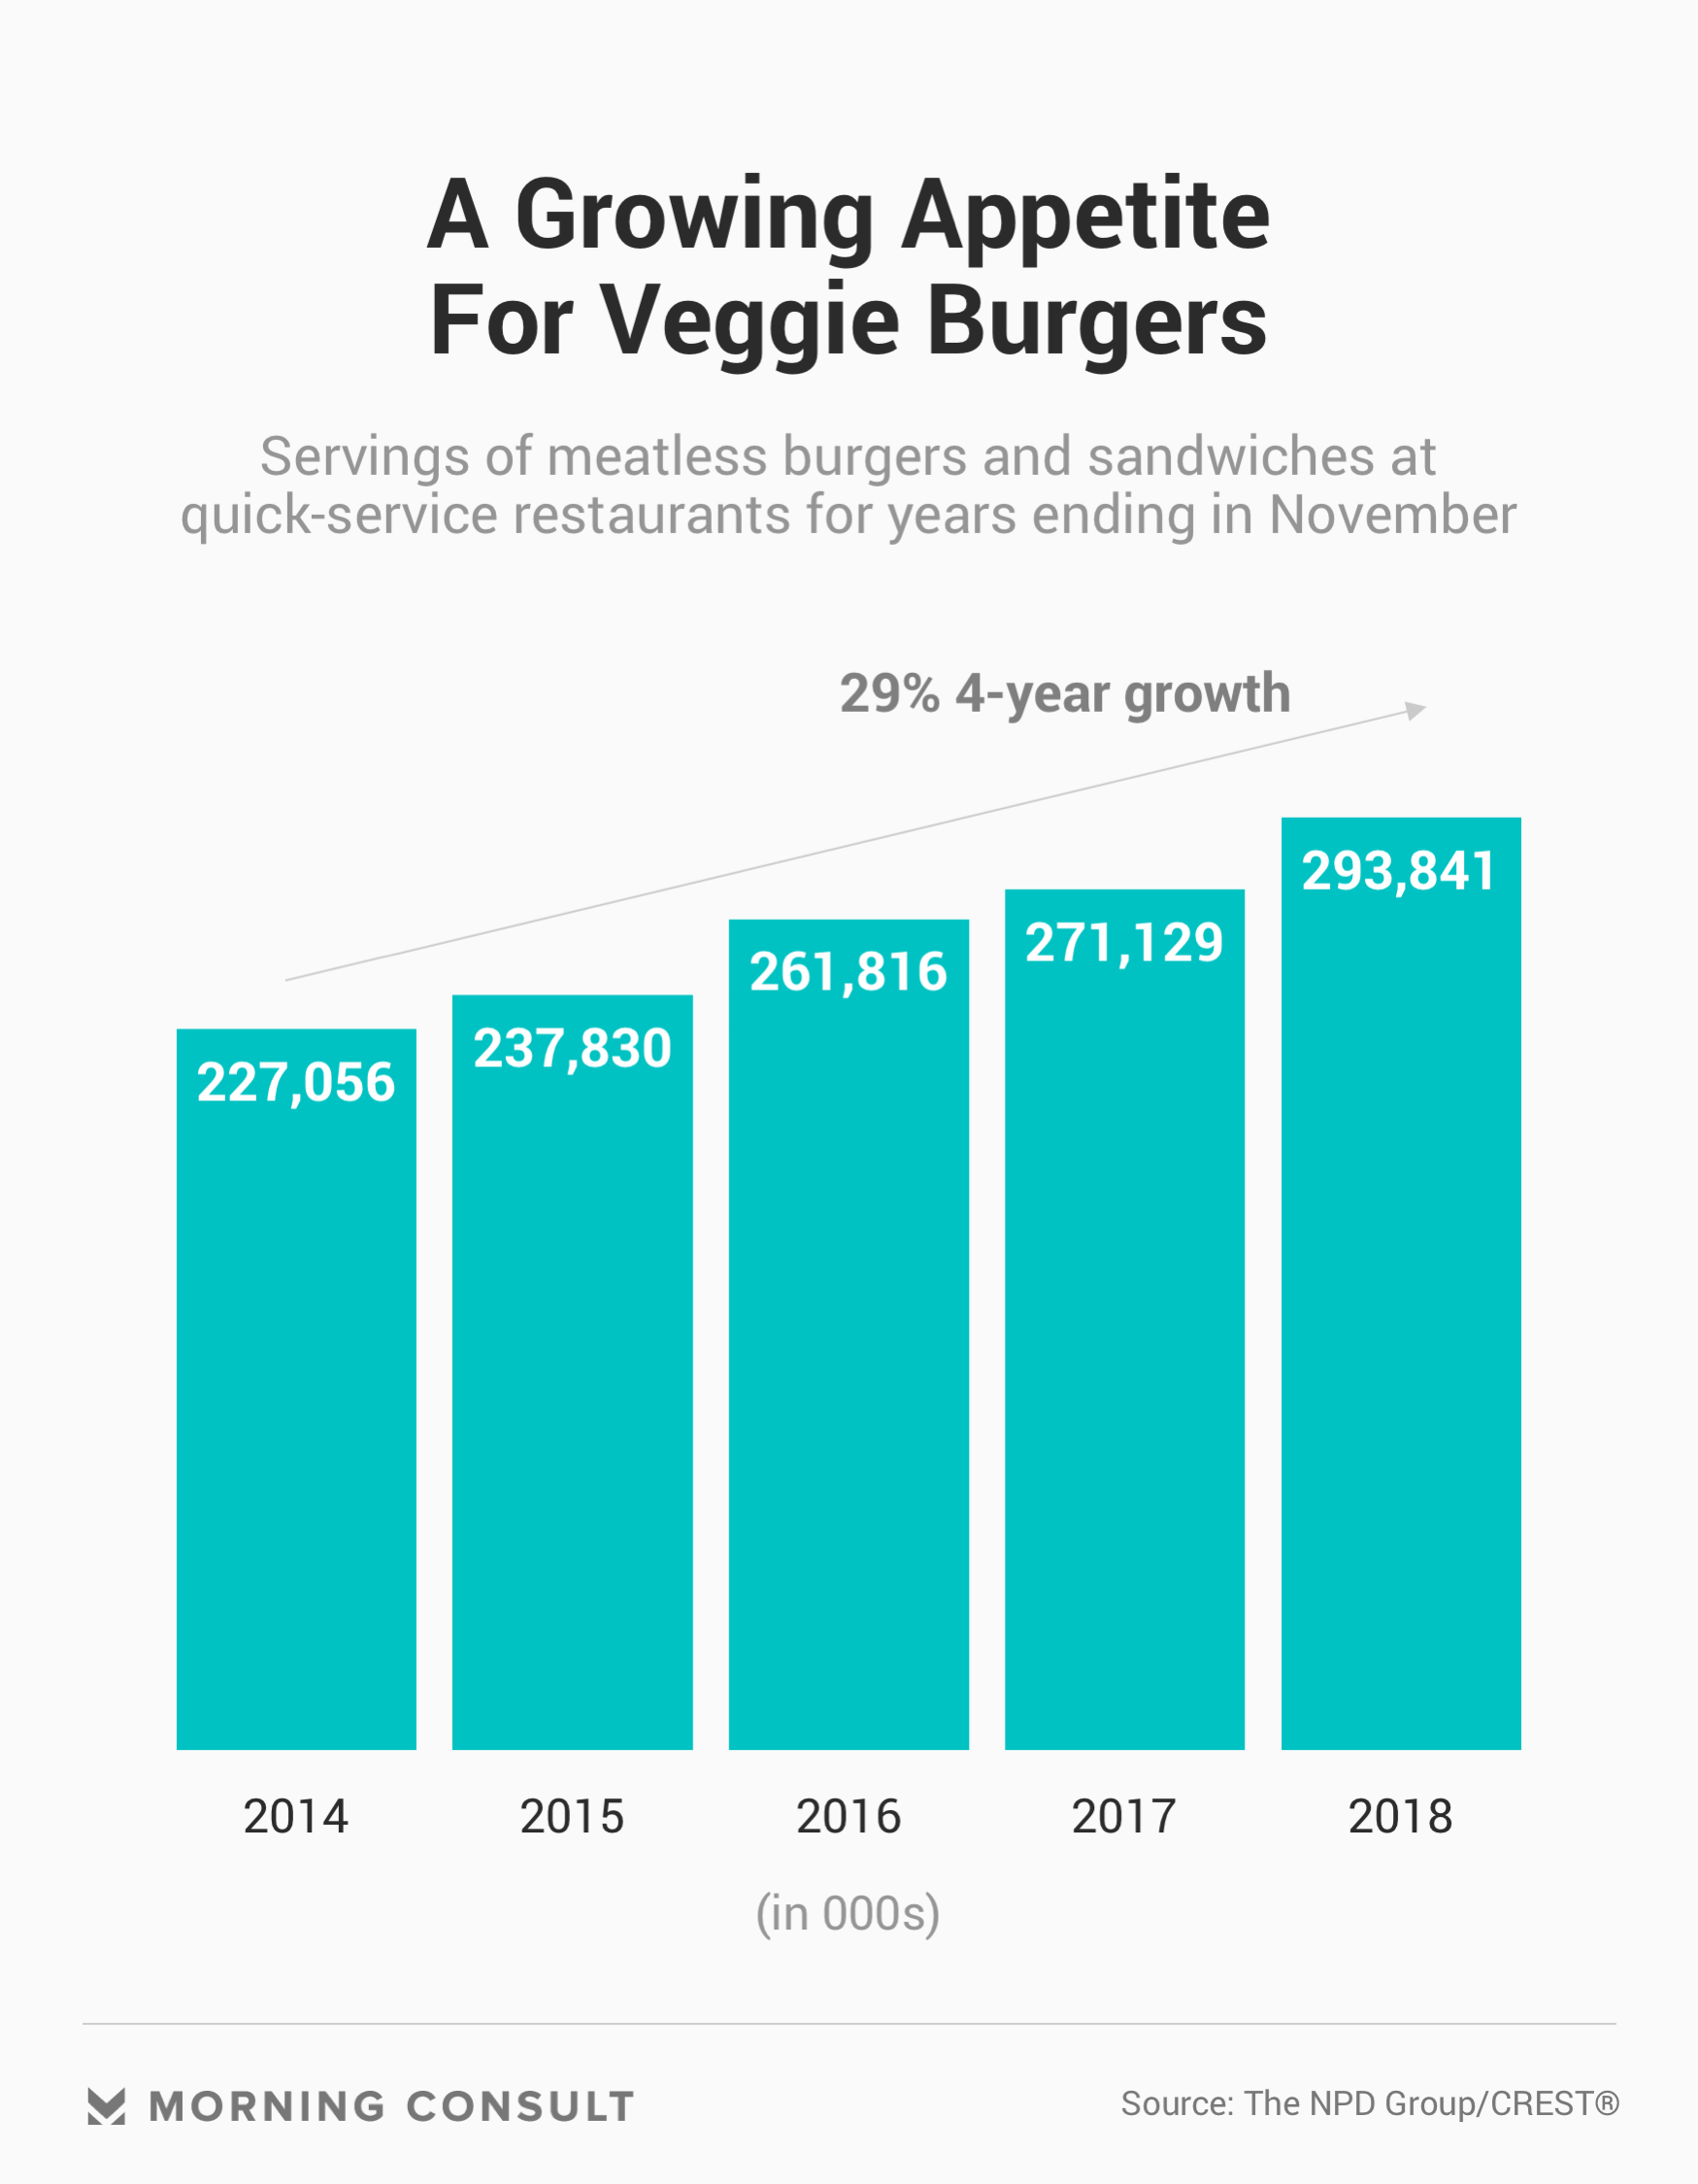 Fast Food Restaurants Look to Turn Plant-Based Burgers Into